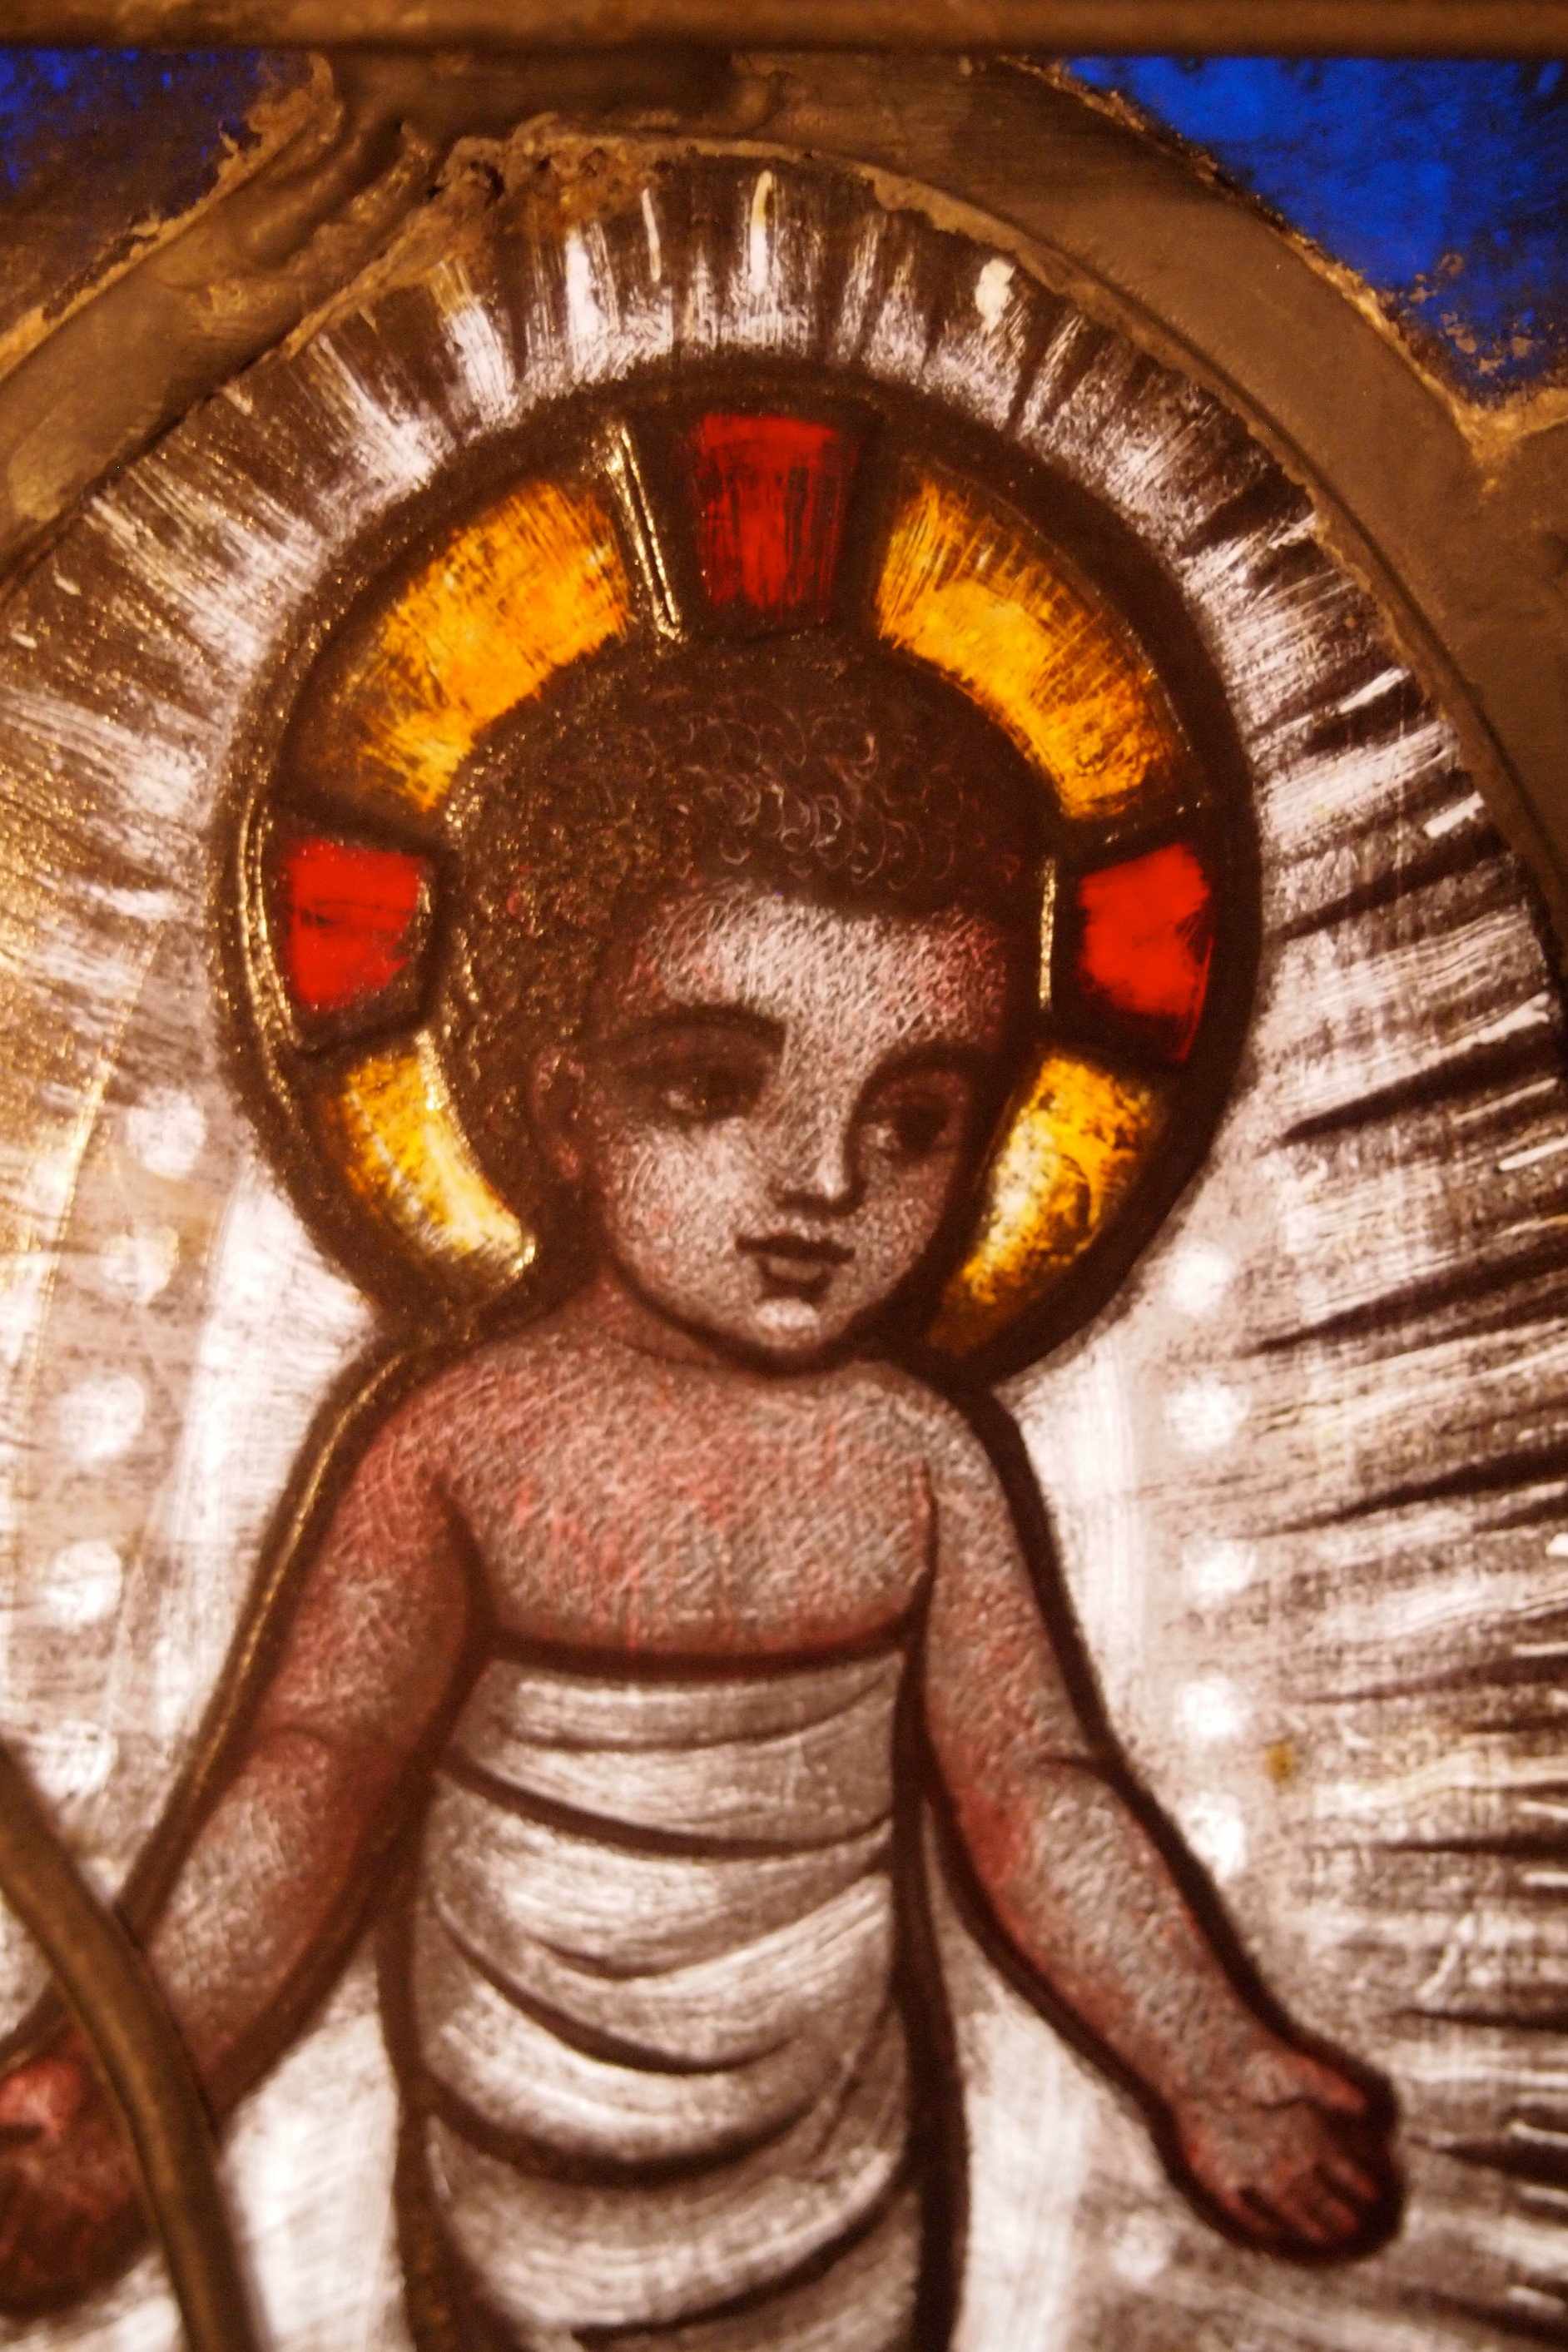 Detail of Saint Peter's stained glass nativity window showing Christ as an infant